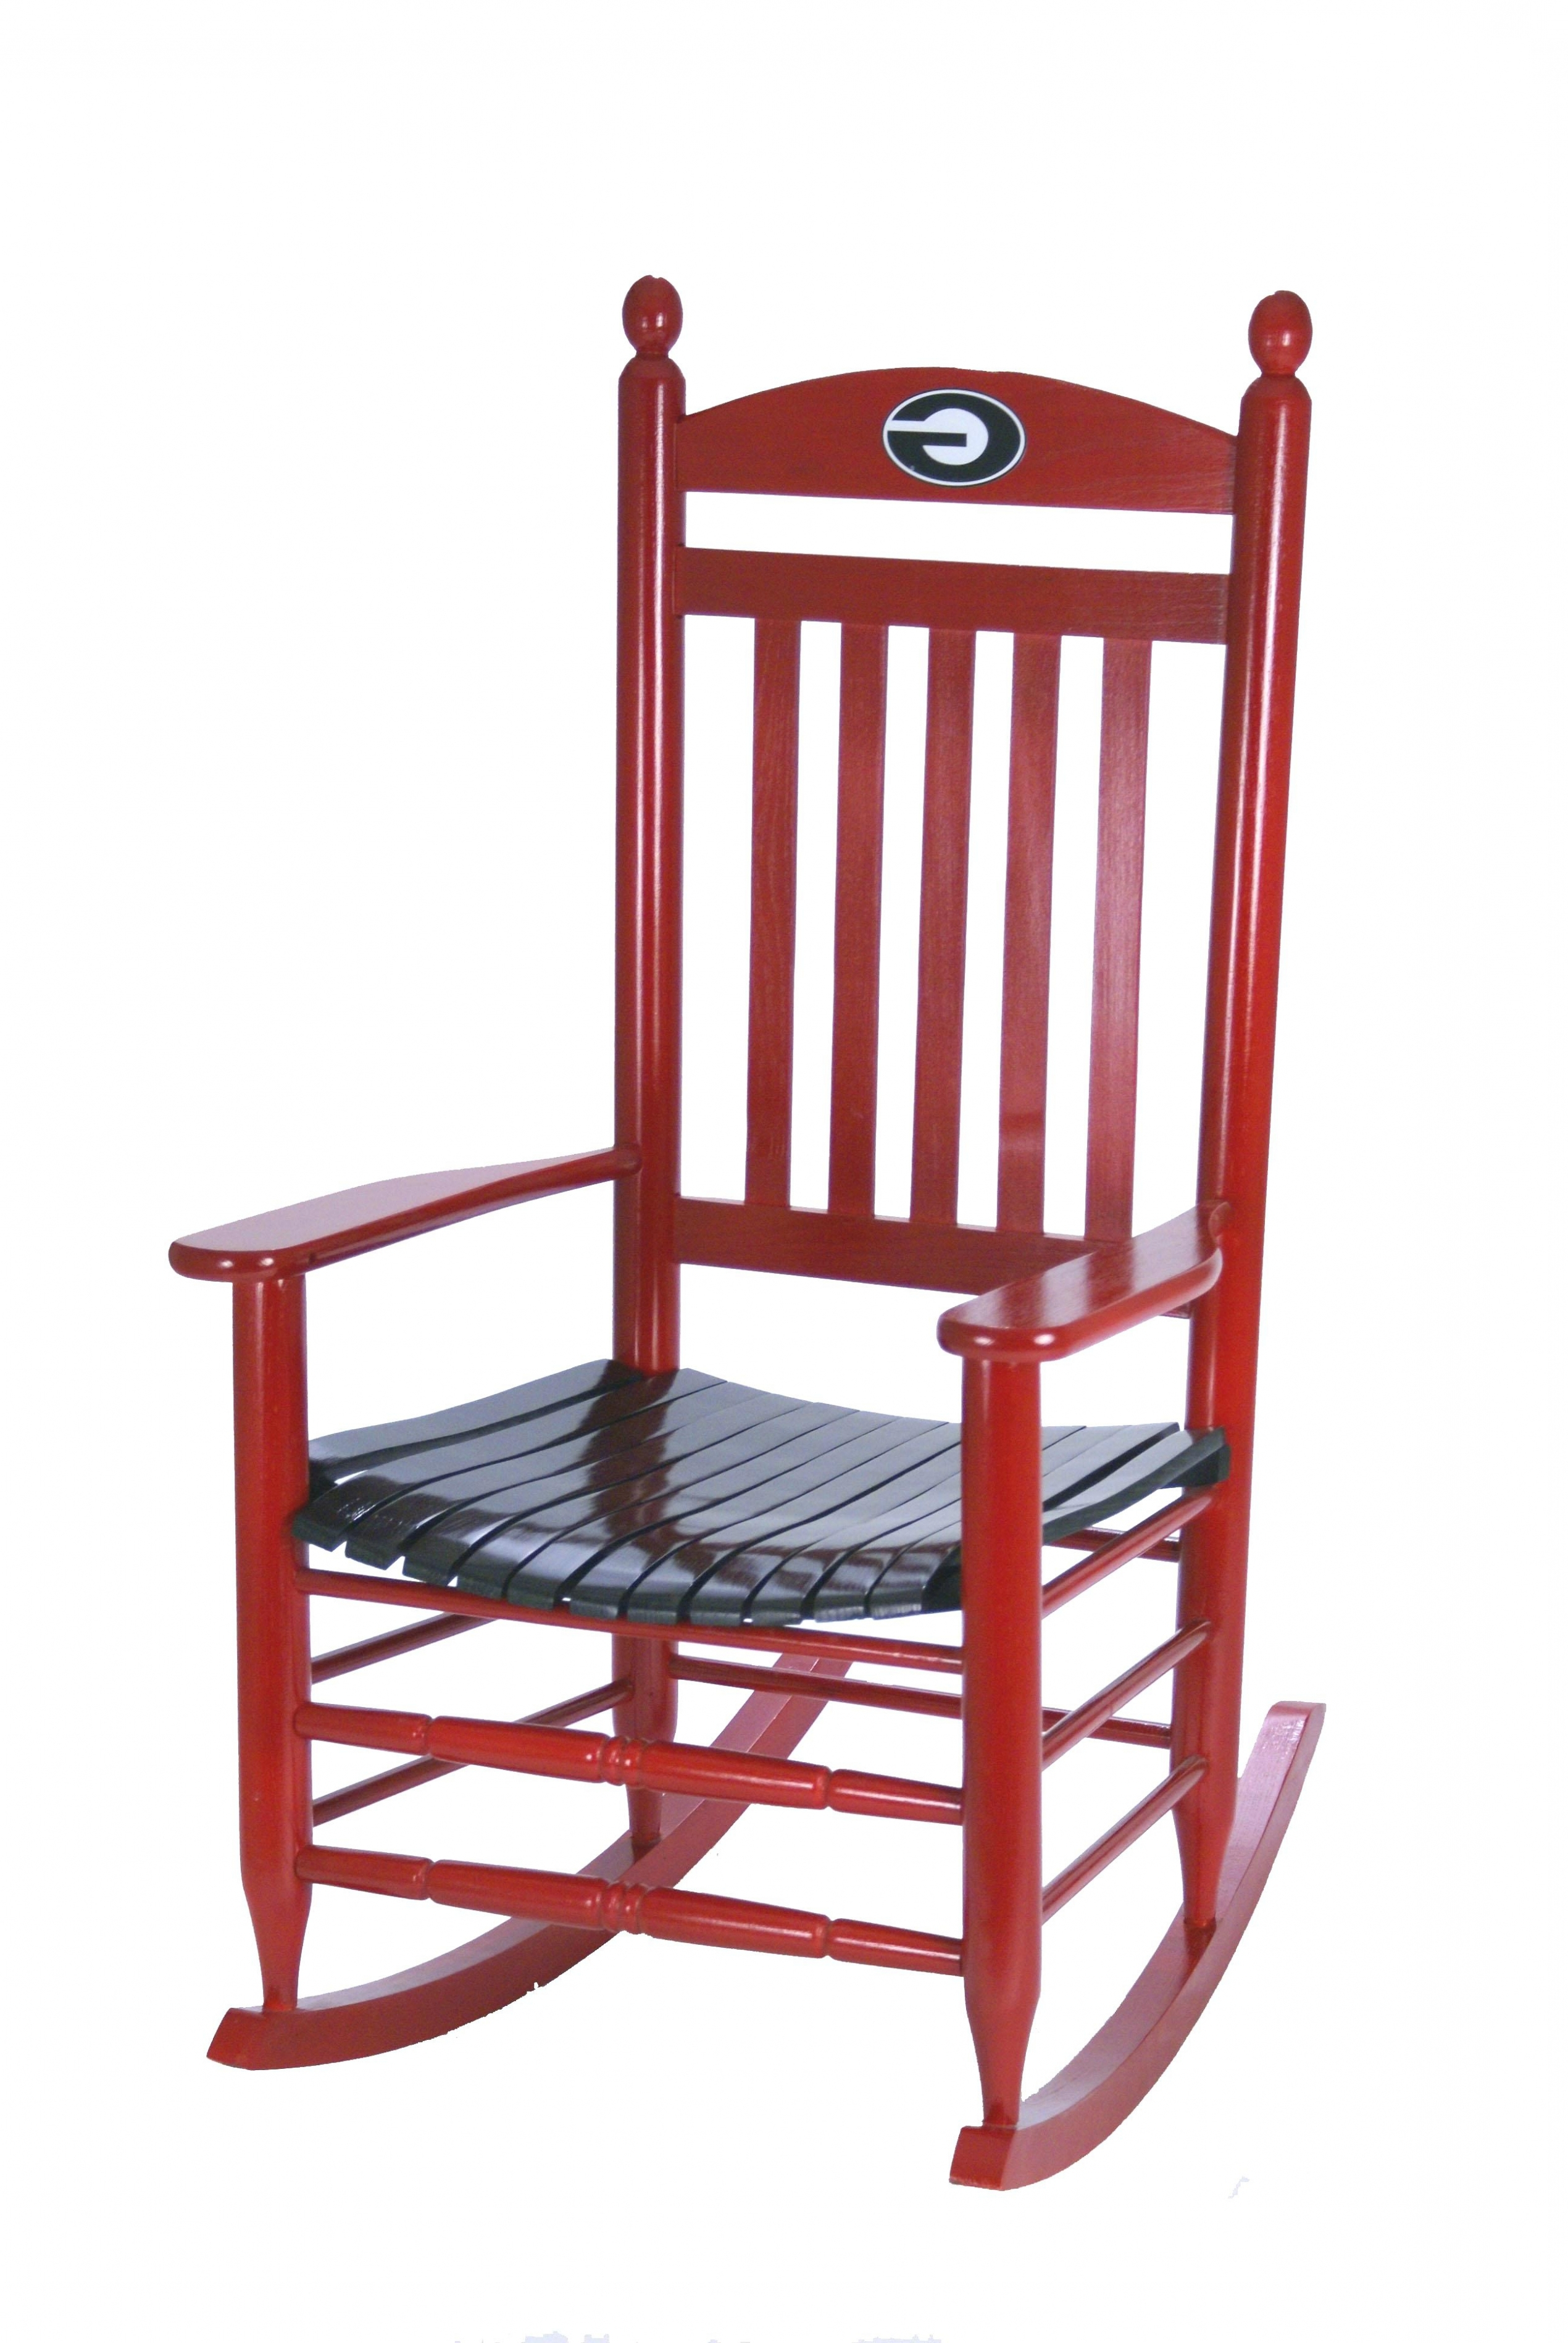 Table & Chair: Cracker Barrel Chair Covers • Chair Covers Ideas With Regard To Well Liked Rocking Chairs At Cracker Barrel (View 12 of 15)